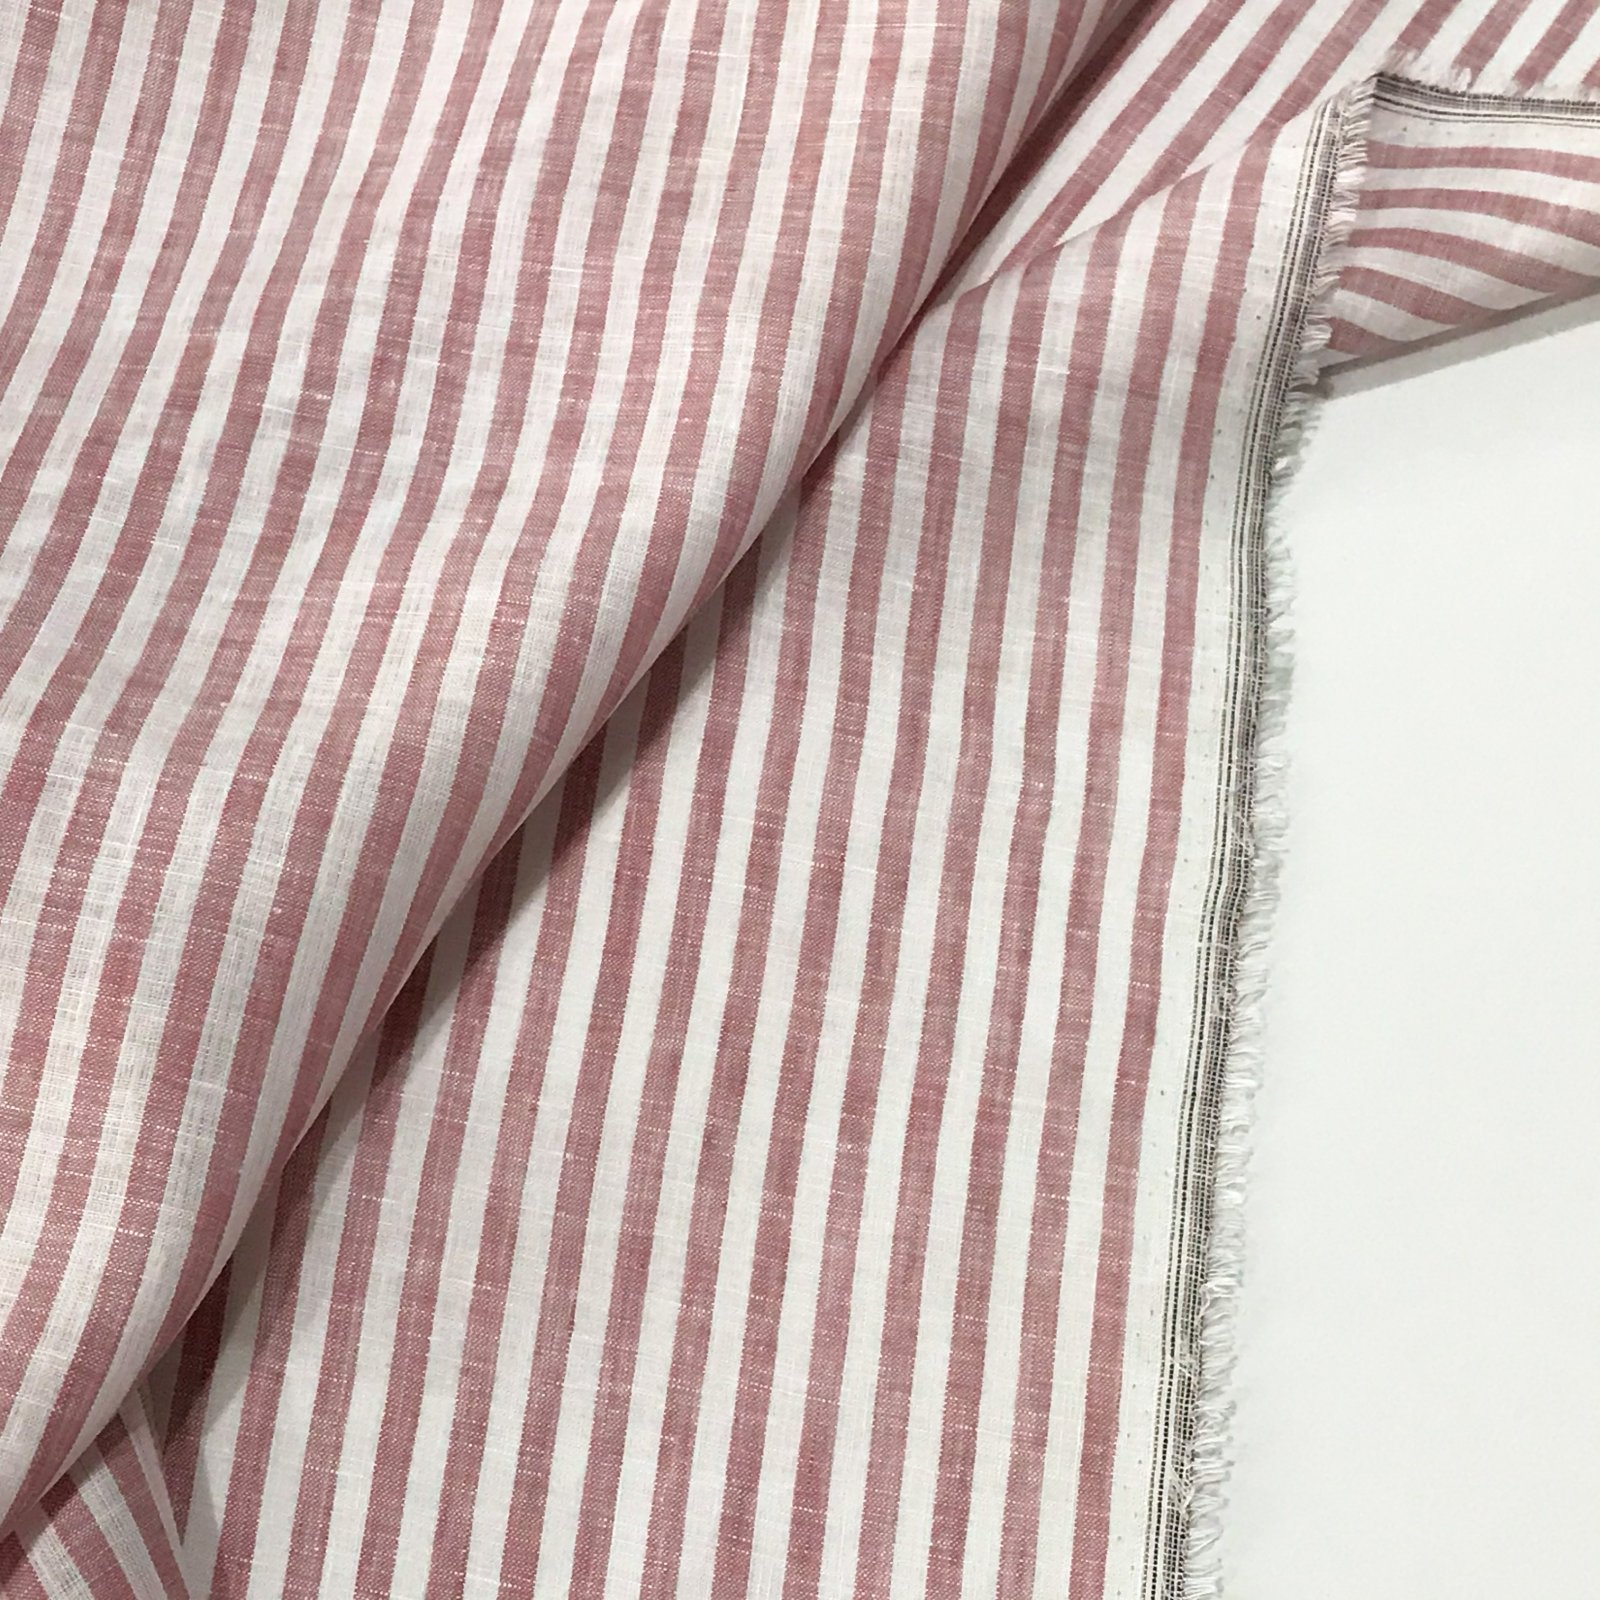 Linen - Cranberry and White Stripes